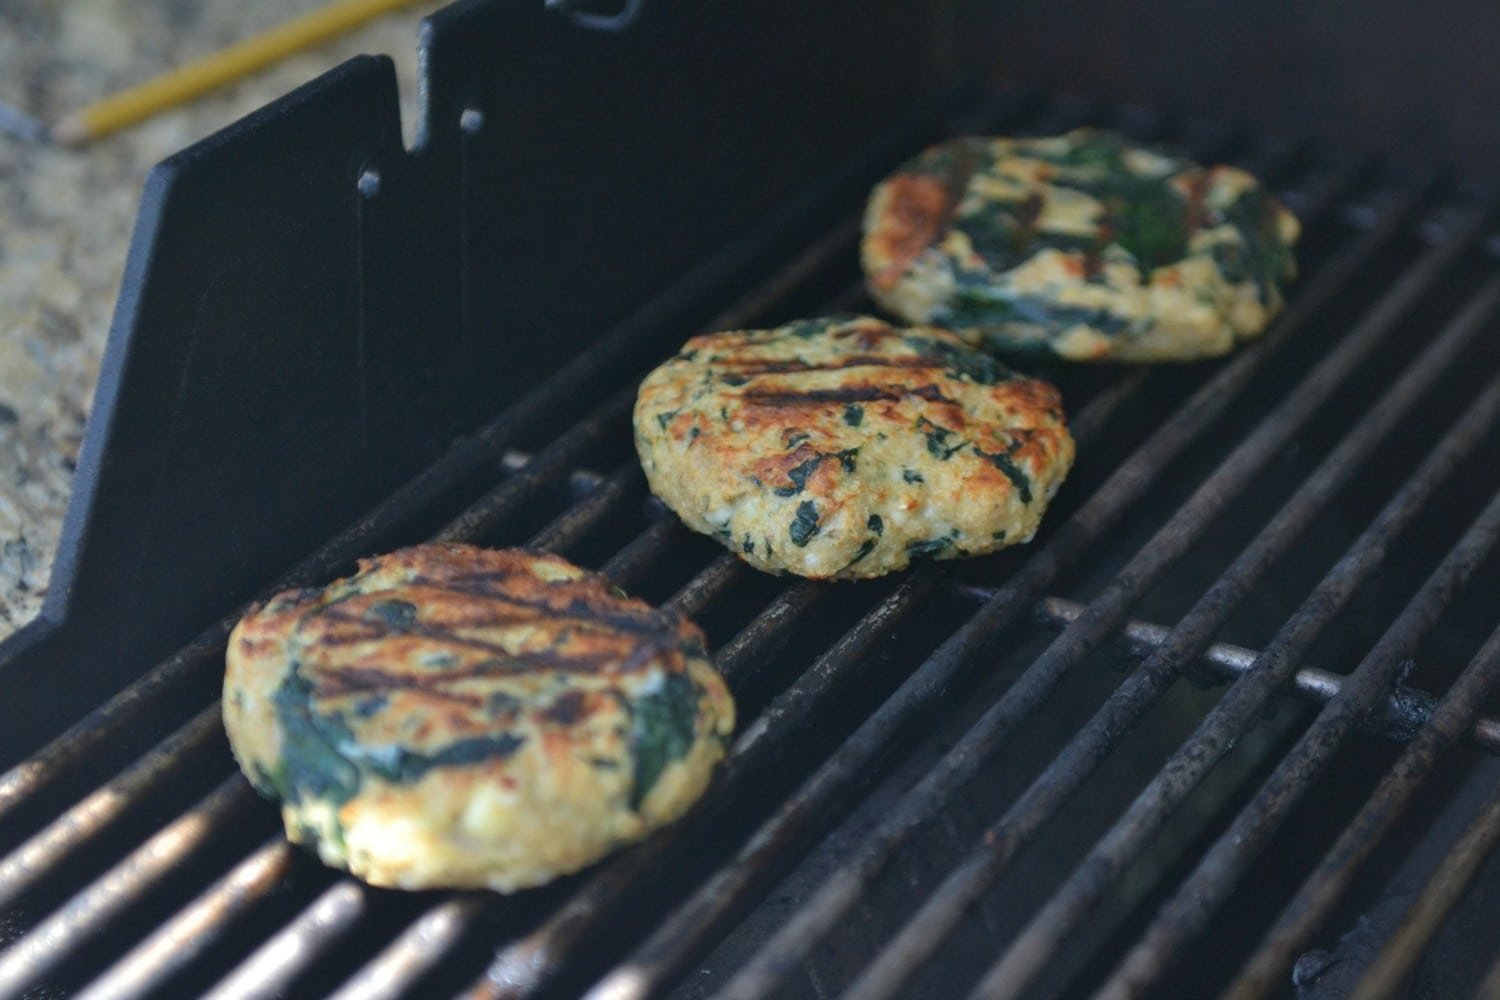 These moist and juicy turkey burgers cook up beautifully on the grill.